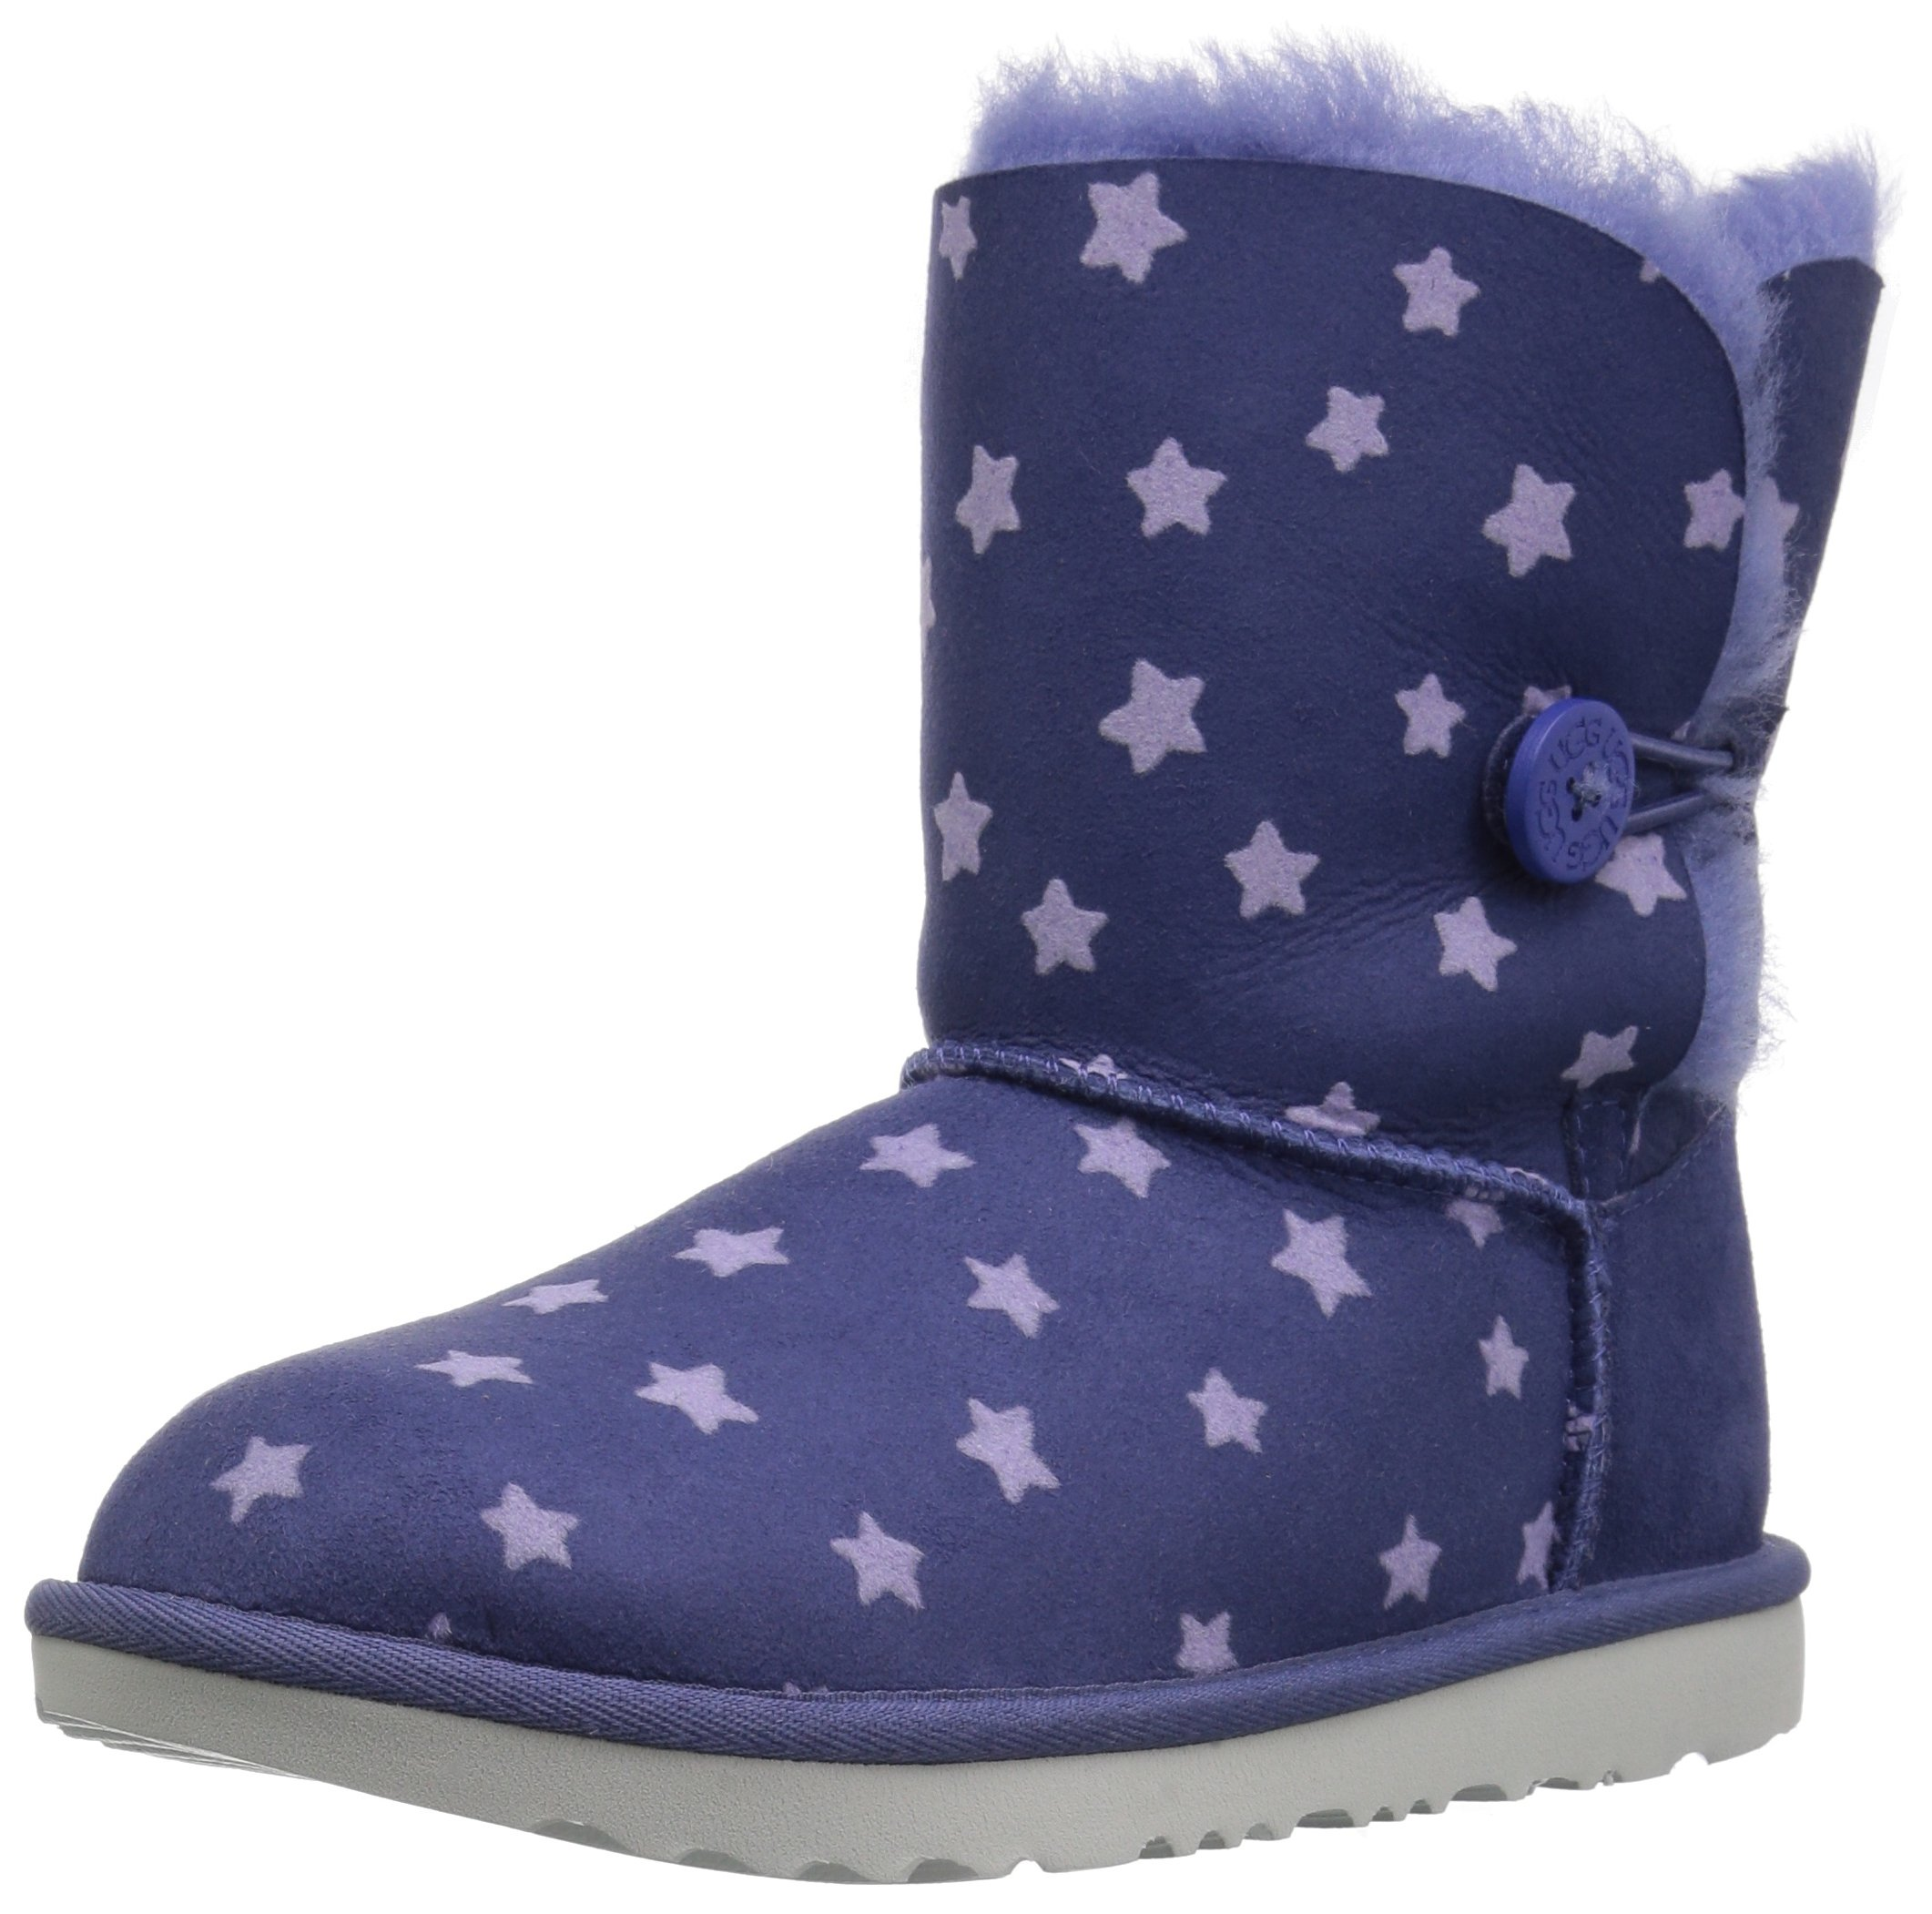 UGG Girls K Bailey Button II Stars Pull-On Boot, Nocturn, 1 M US Little Kid by UGG (Image #1)